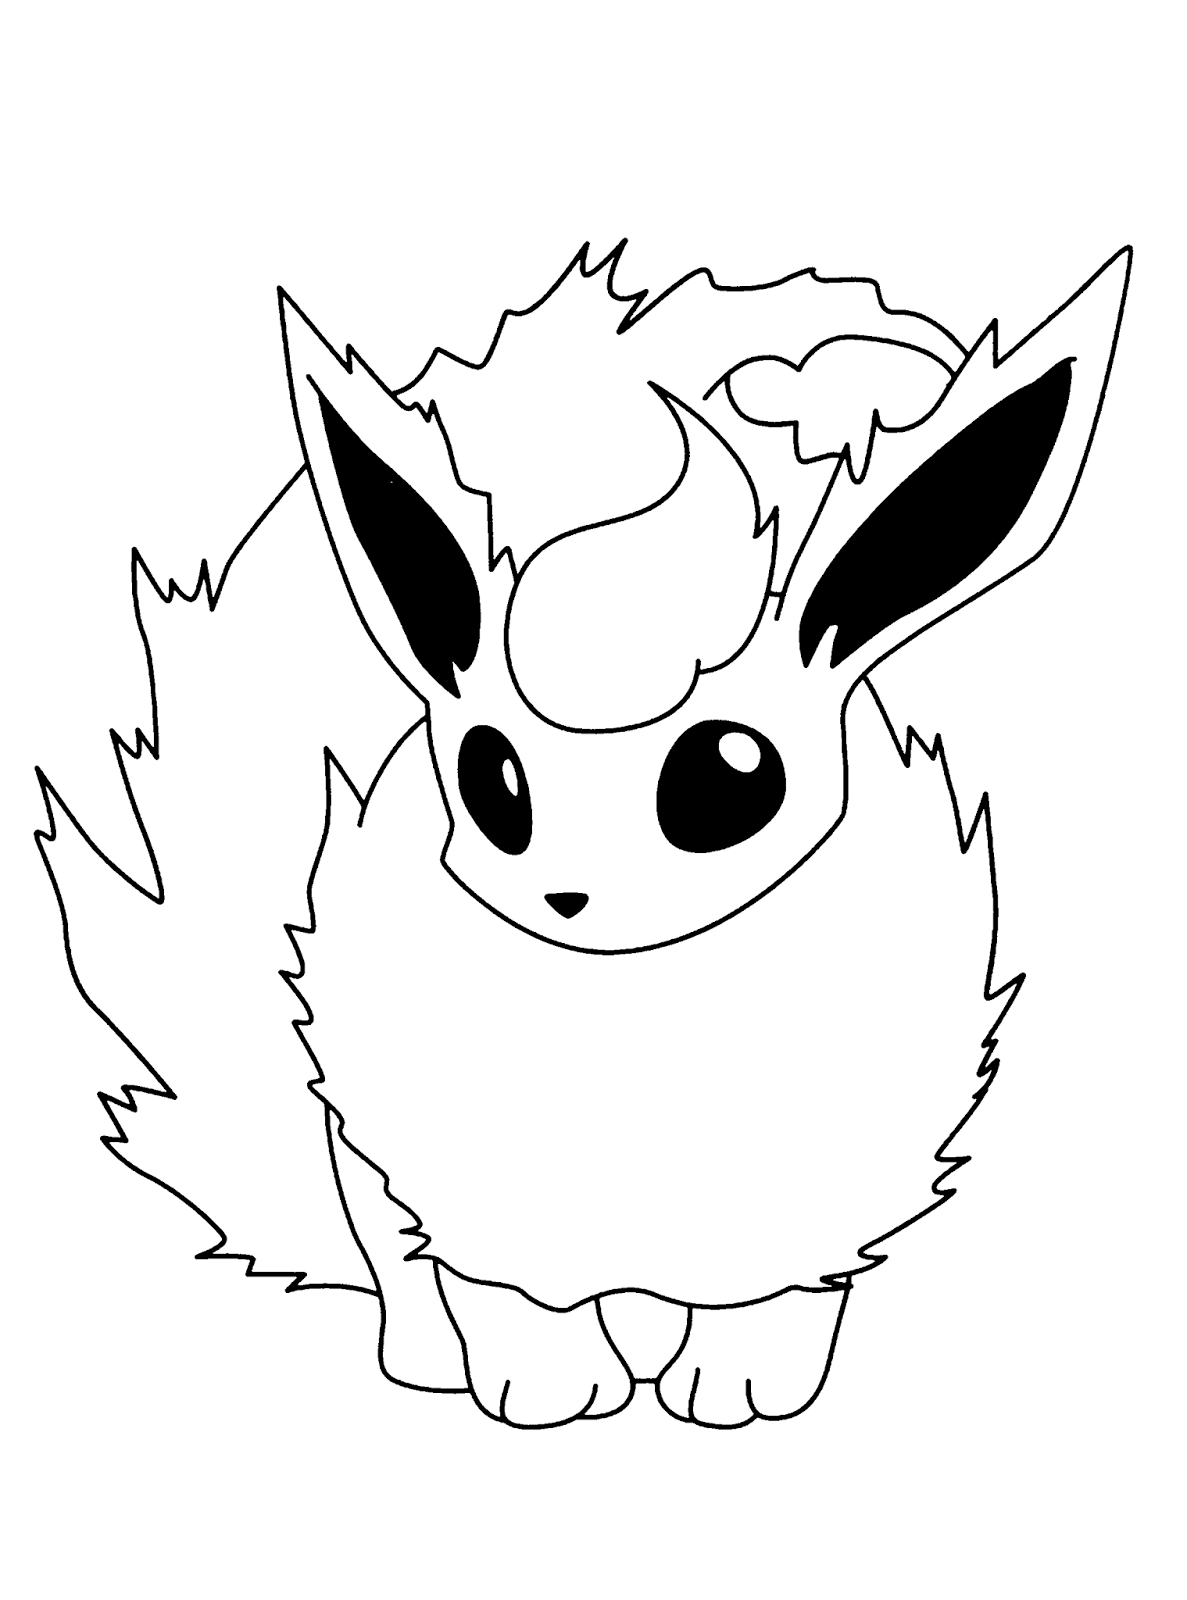 pokemon colouring in sheets top 93 free printable pokemon coloring pages online in sheets pokemon colouring